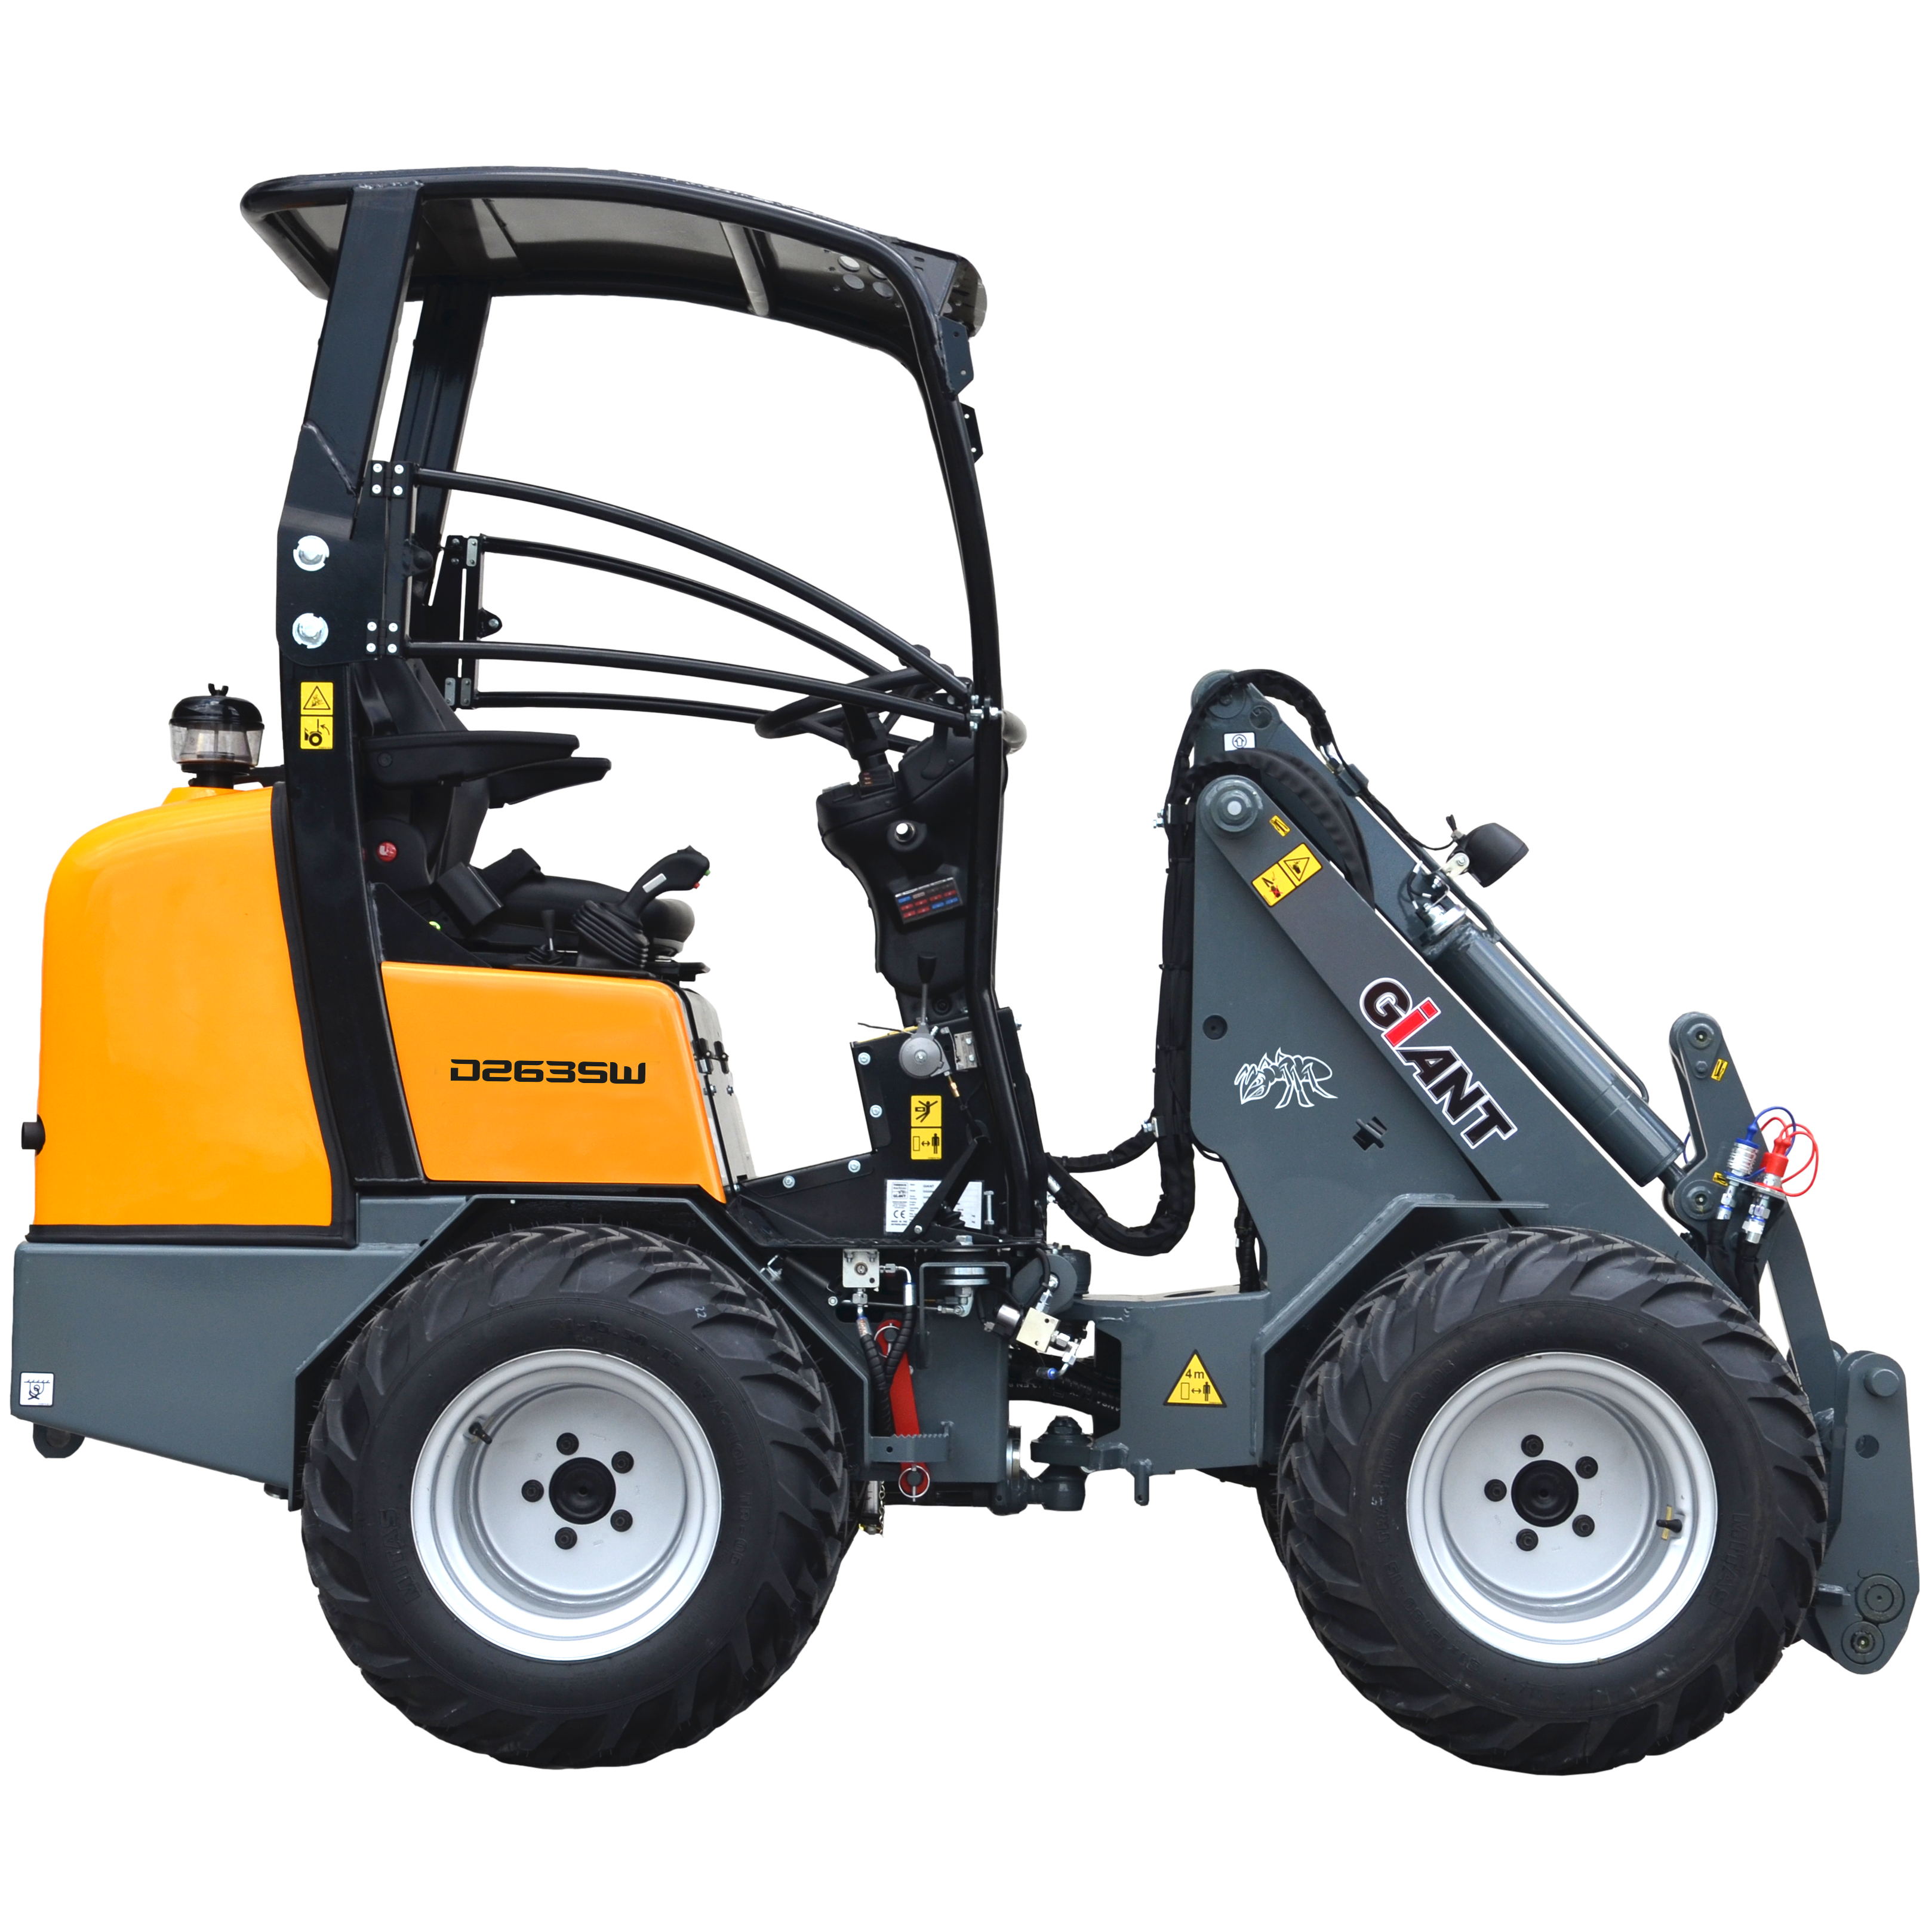 Giant D263sw X Tra Compact Wheel Loader New Amp Demonstrator